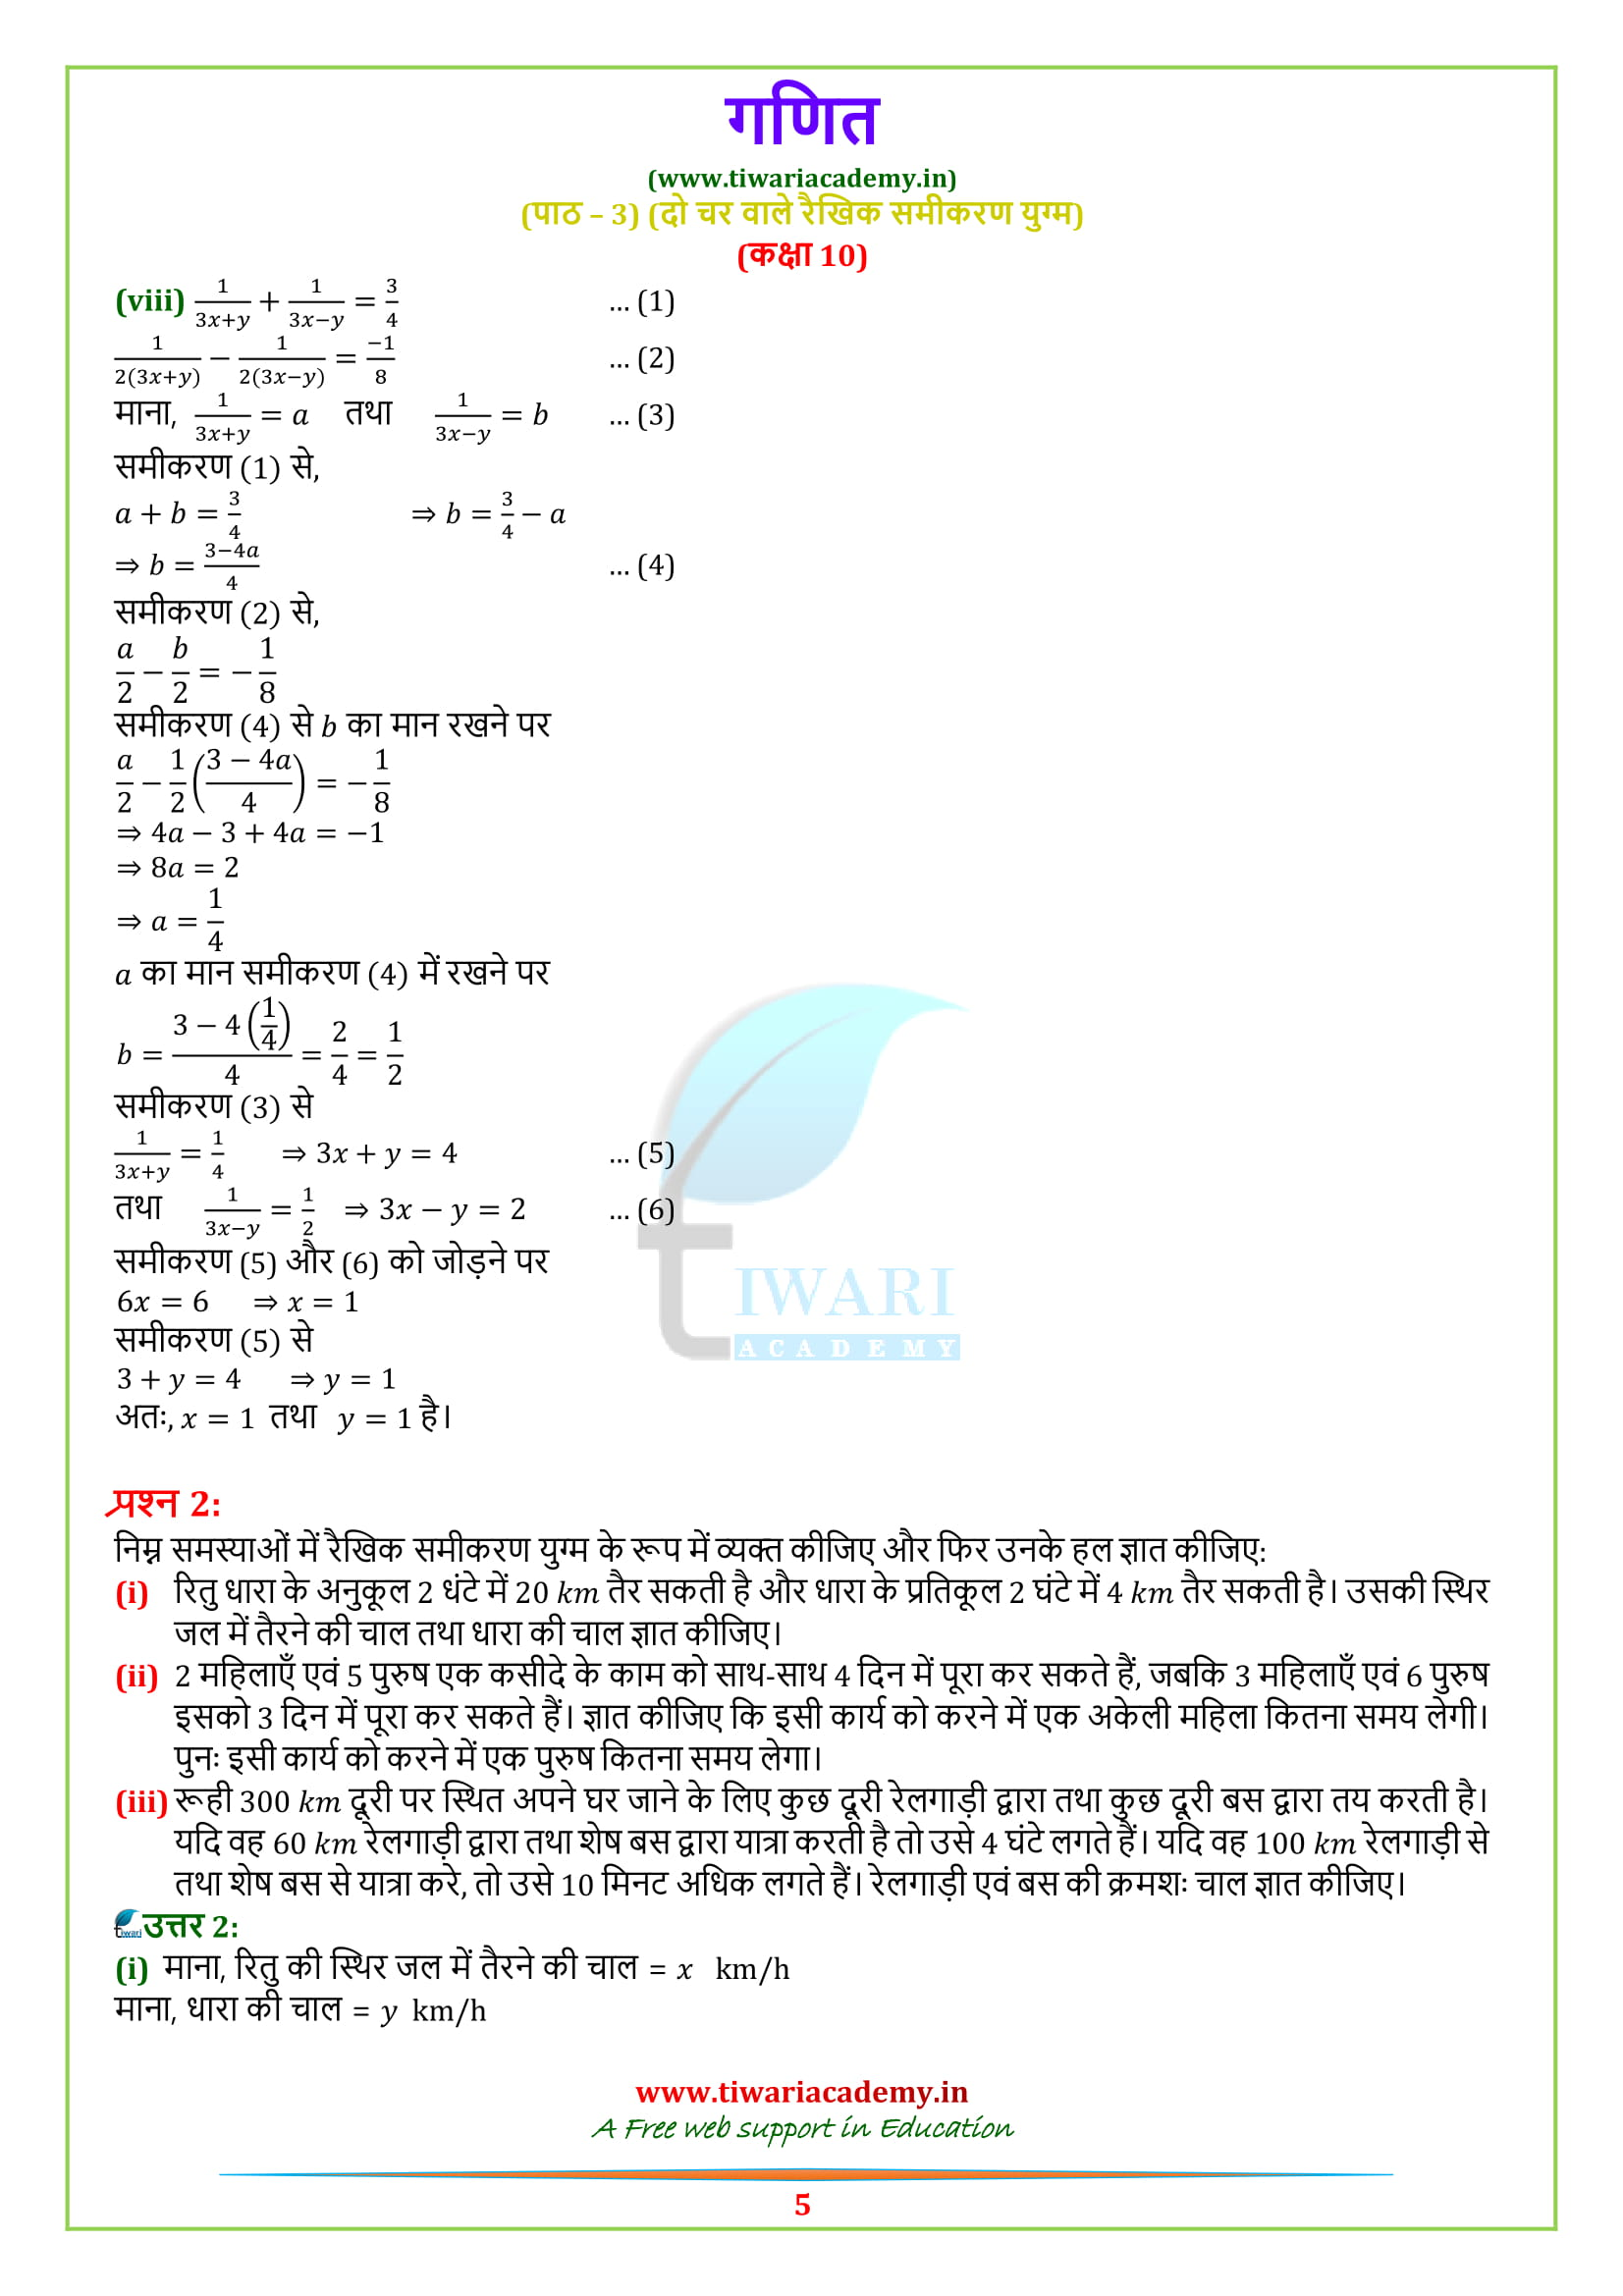 10 Maths exercise 3.6 solutions in hindi for 2018-19